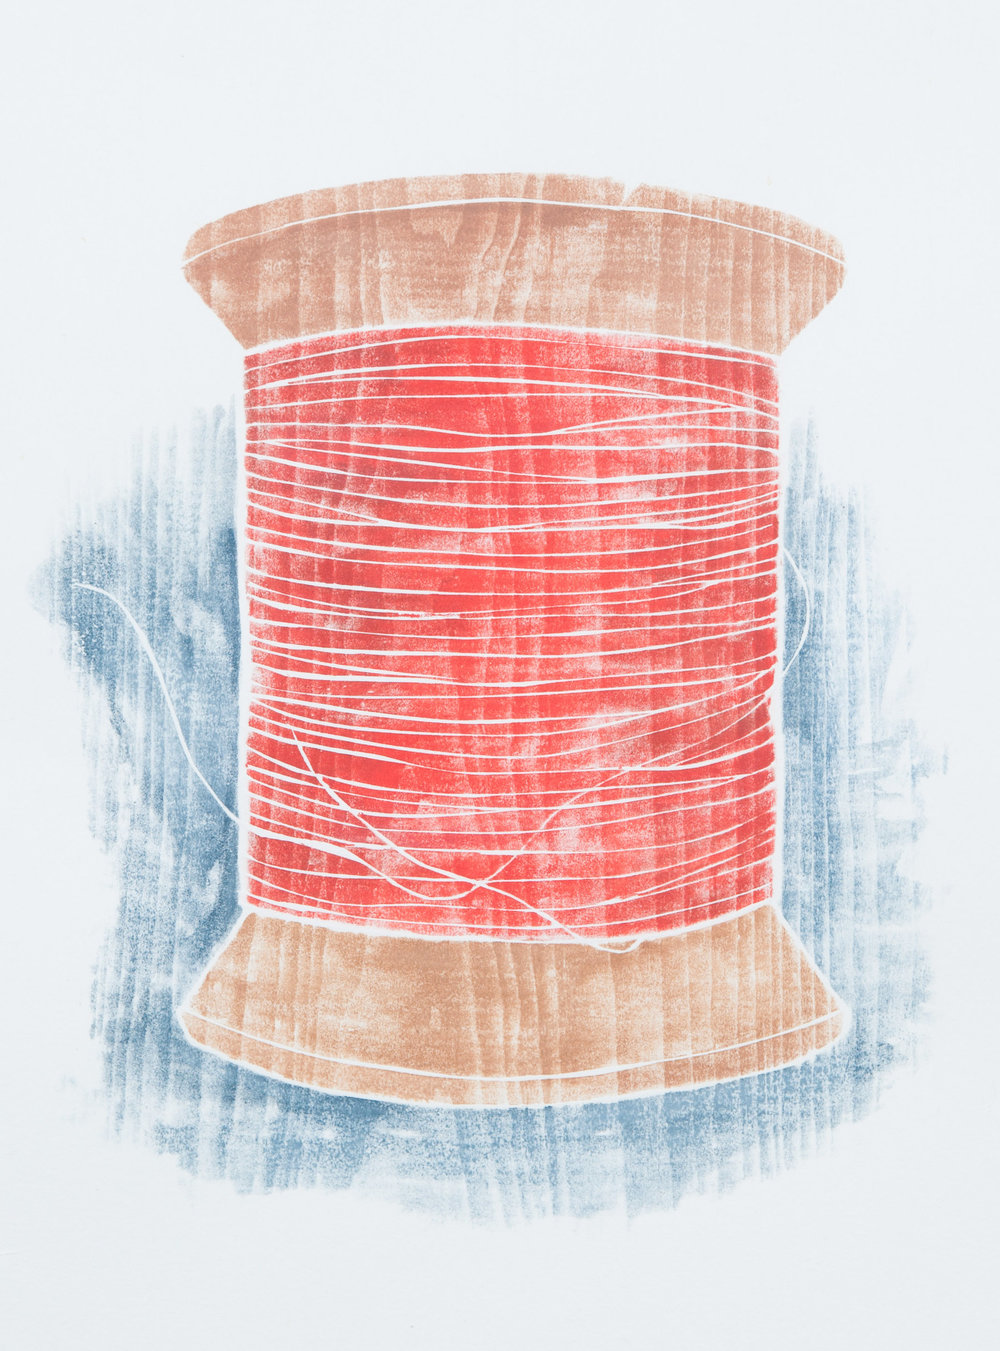 """Old Spool"" (red), white line woodcut, 10"" x 9"", $350 (framed)"